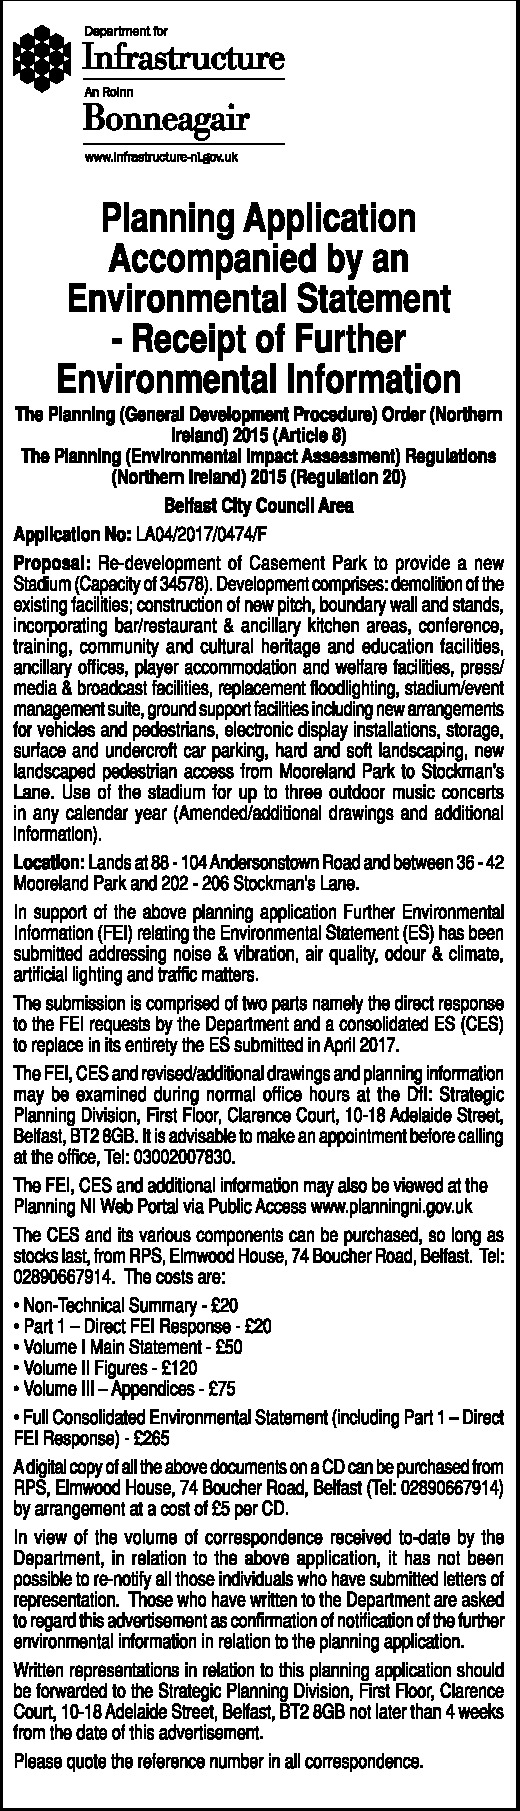 Planning application with environment statement - Public Notice